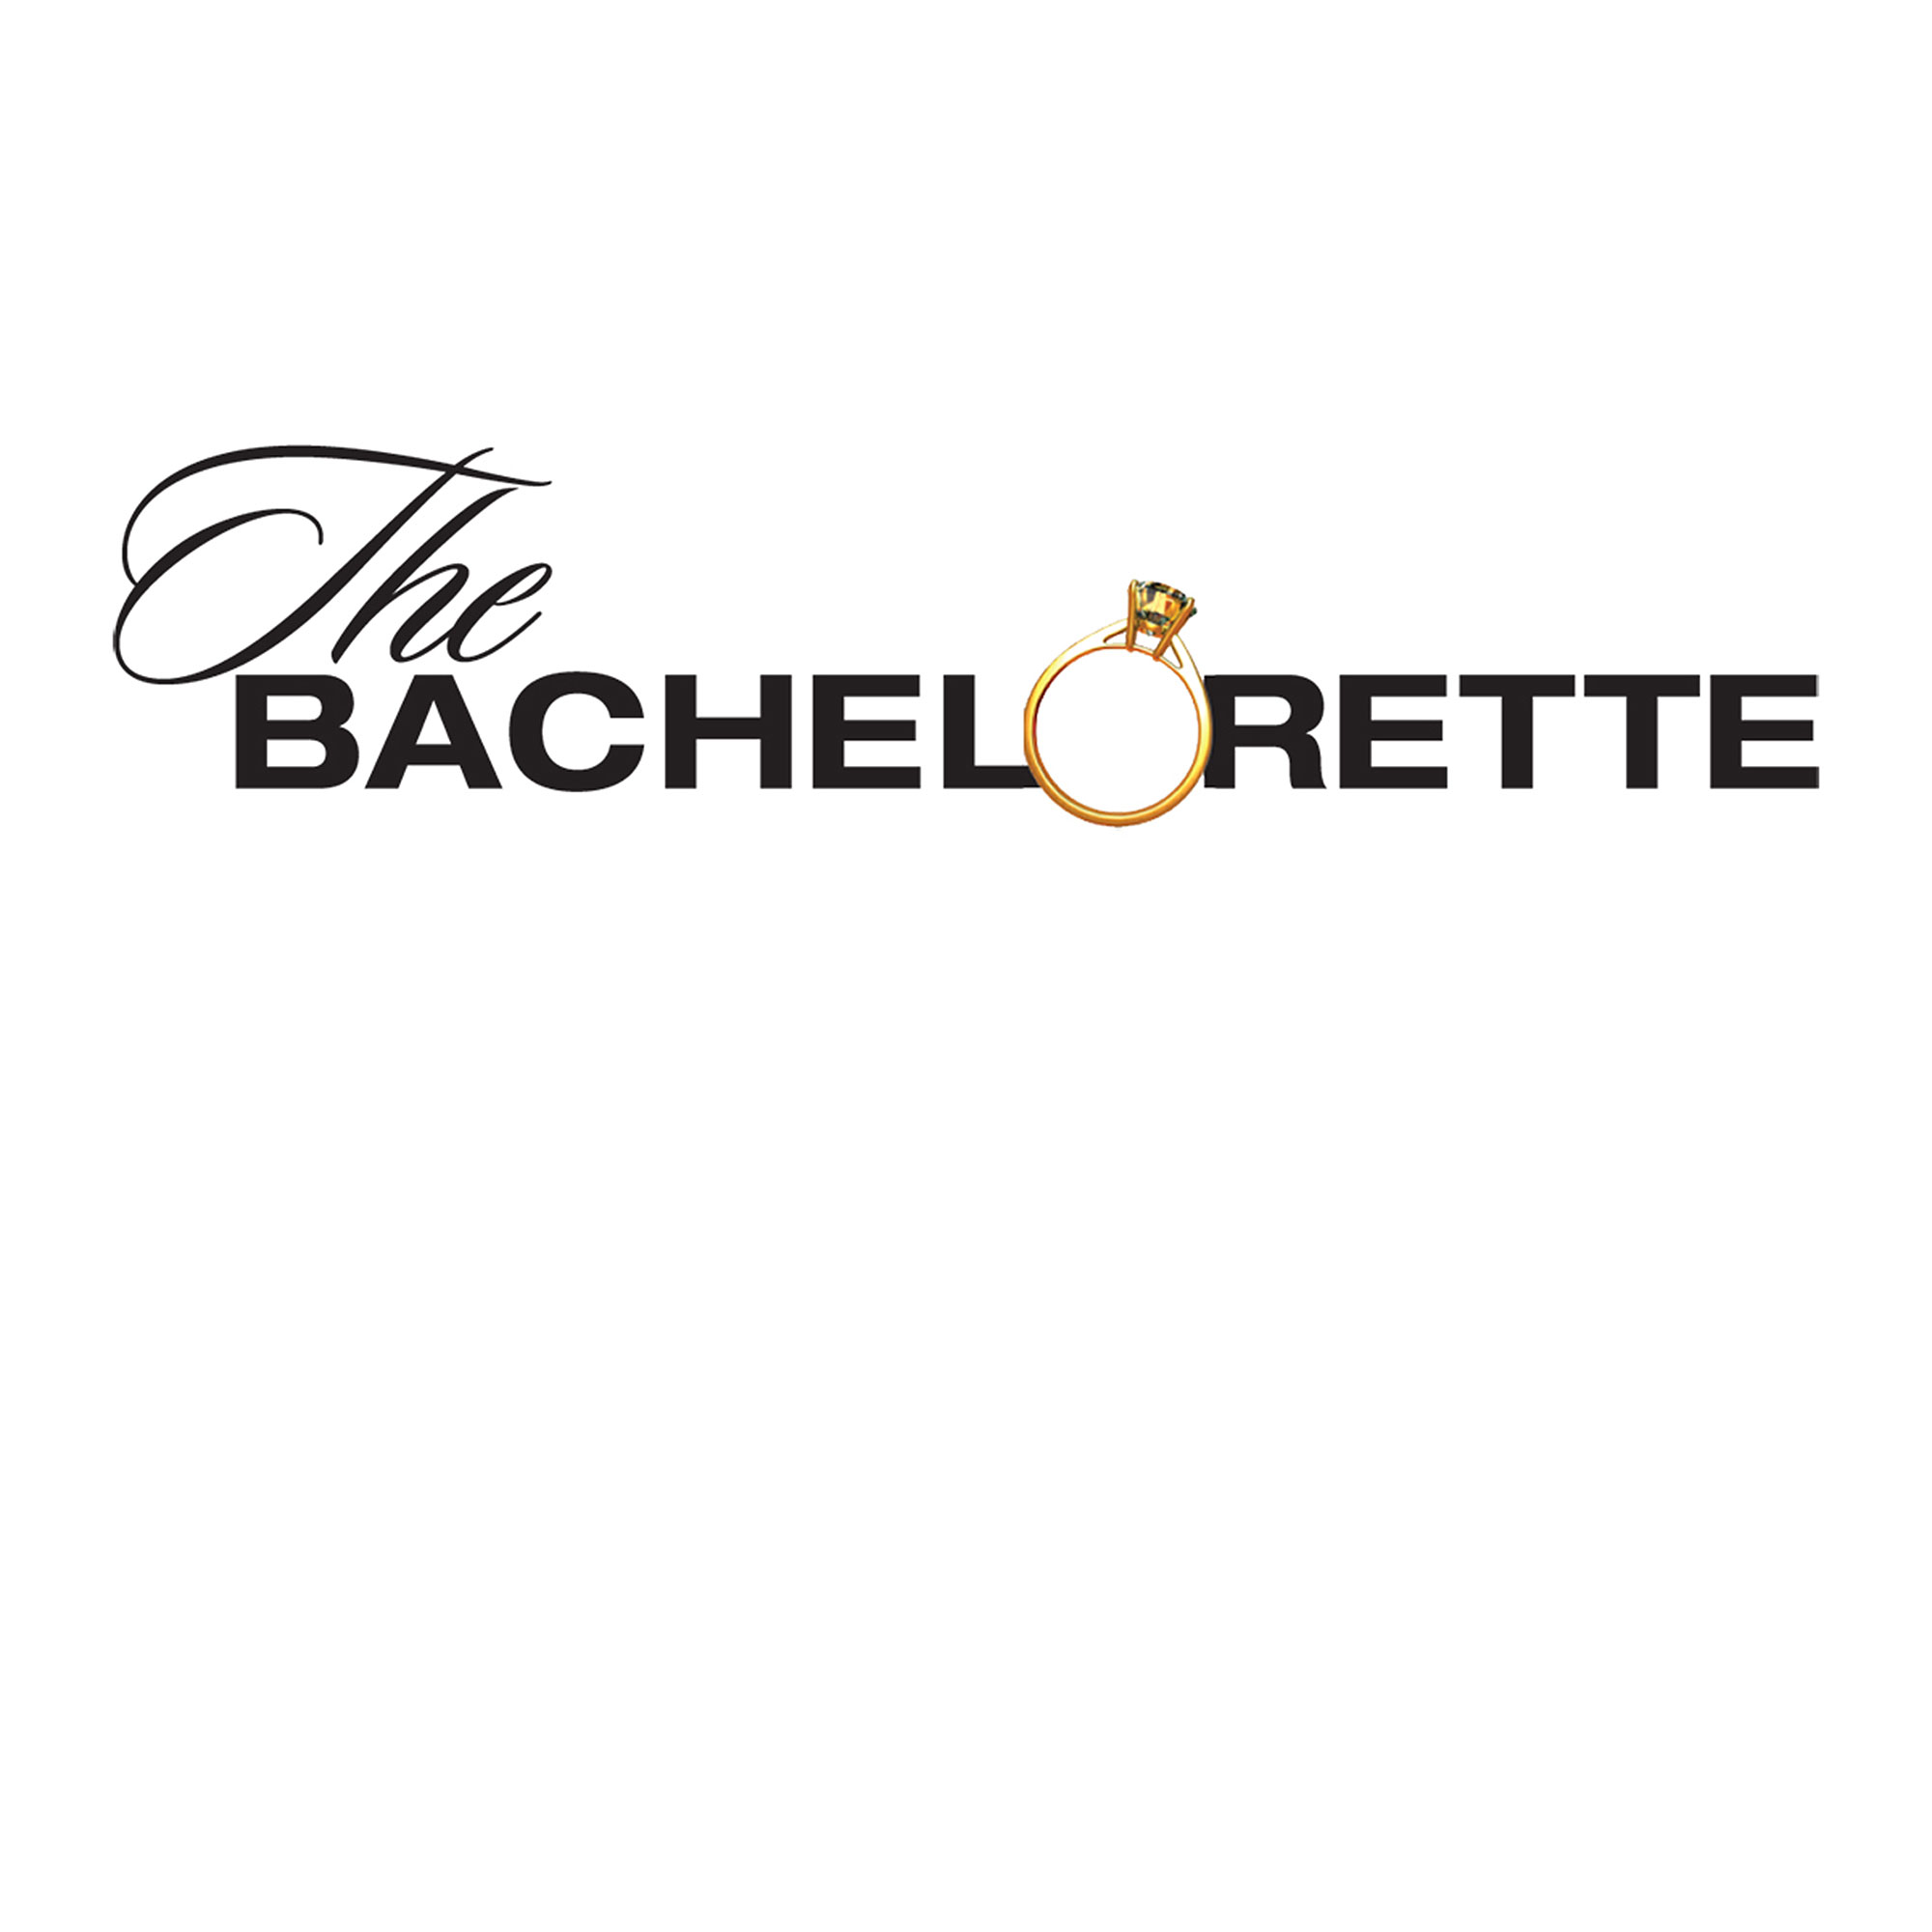 The Bachelorette Episode 6 Review